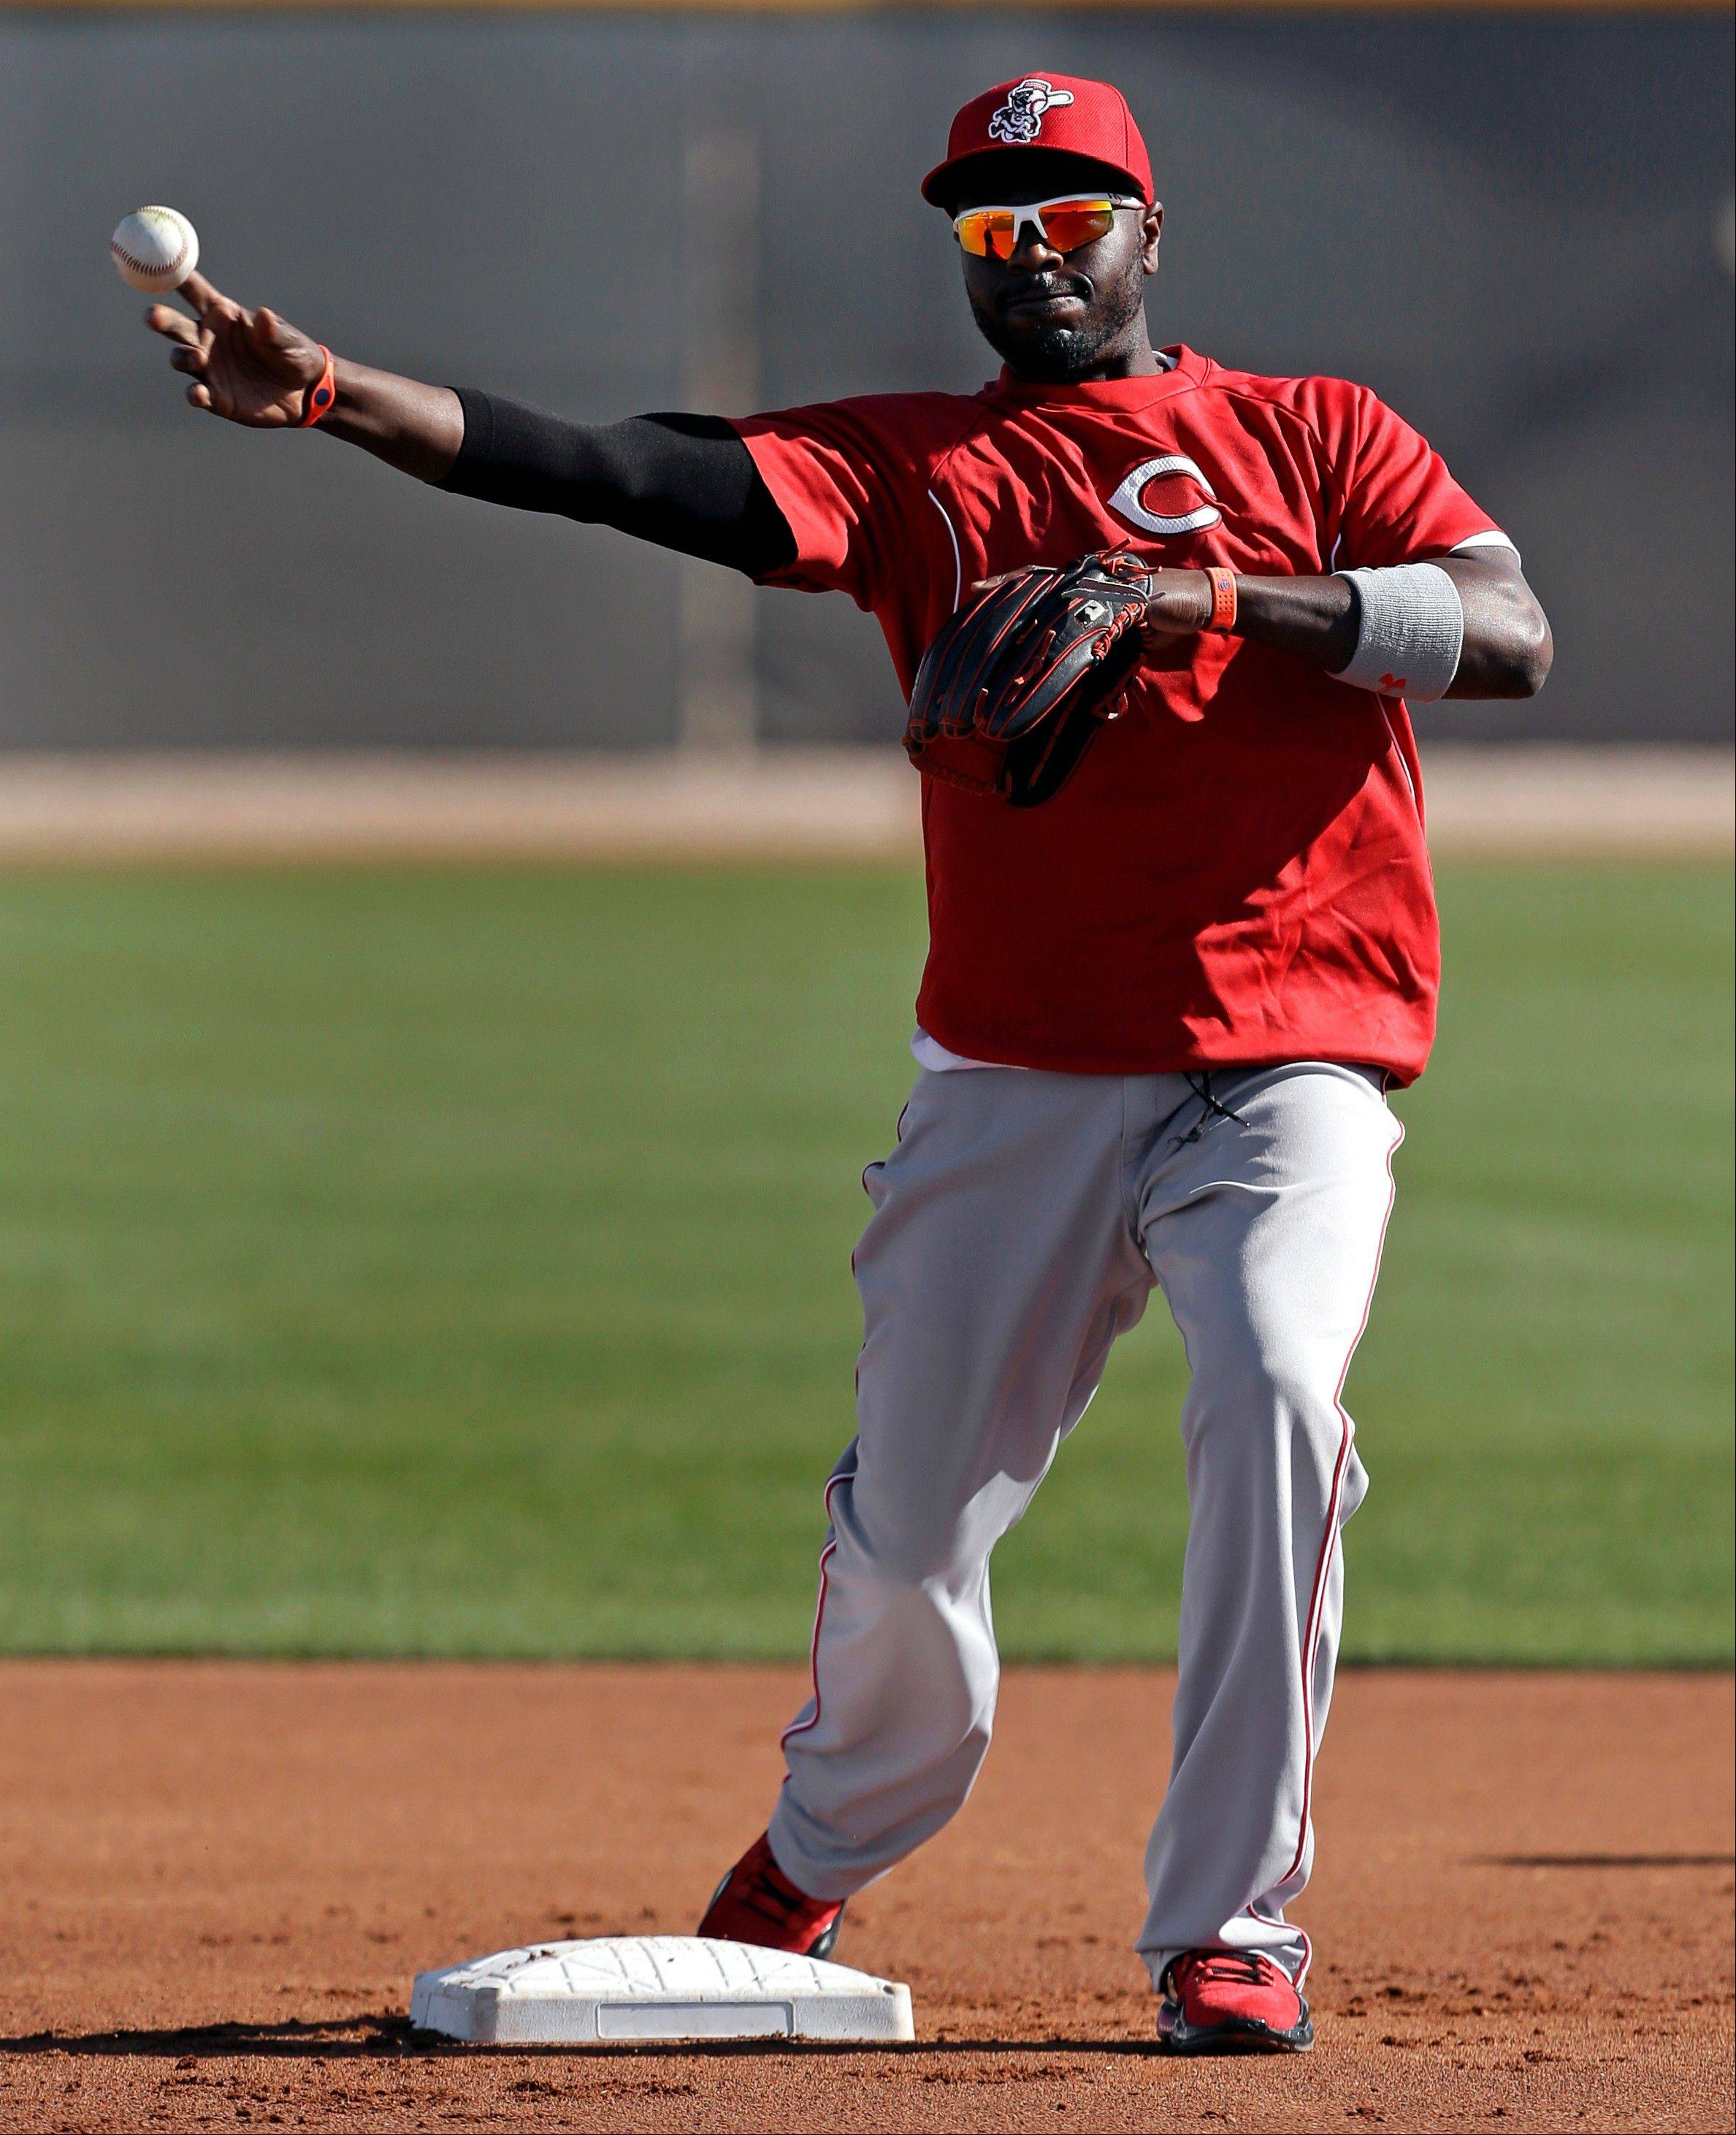 Cincinnati Reds second baseman Brandon Phillips says he believes his flashy style turned Gold Glove voters against him last season.